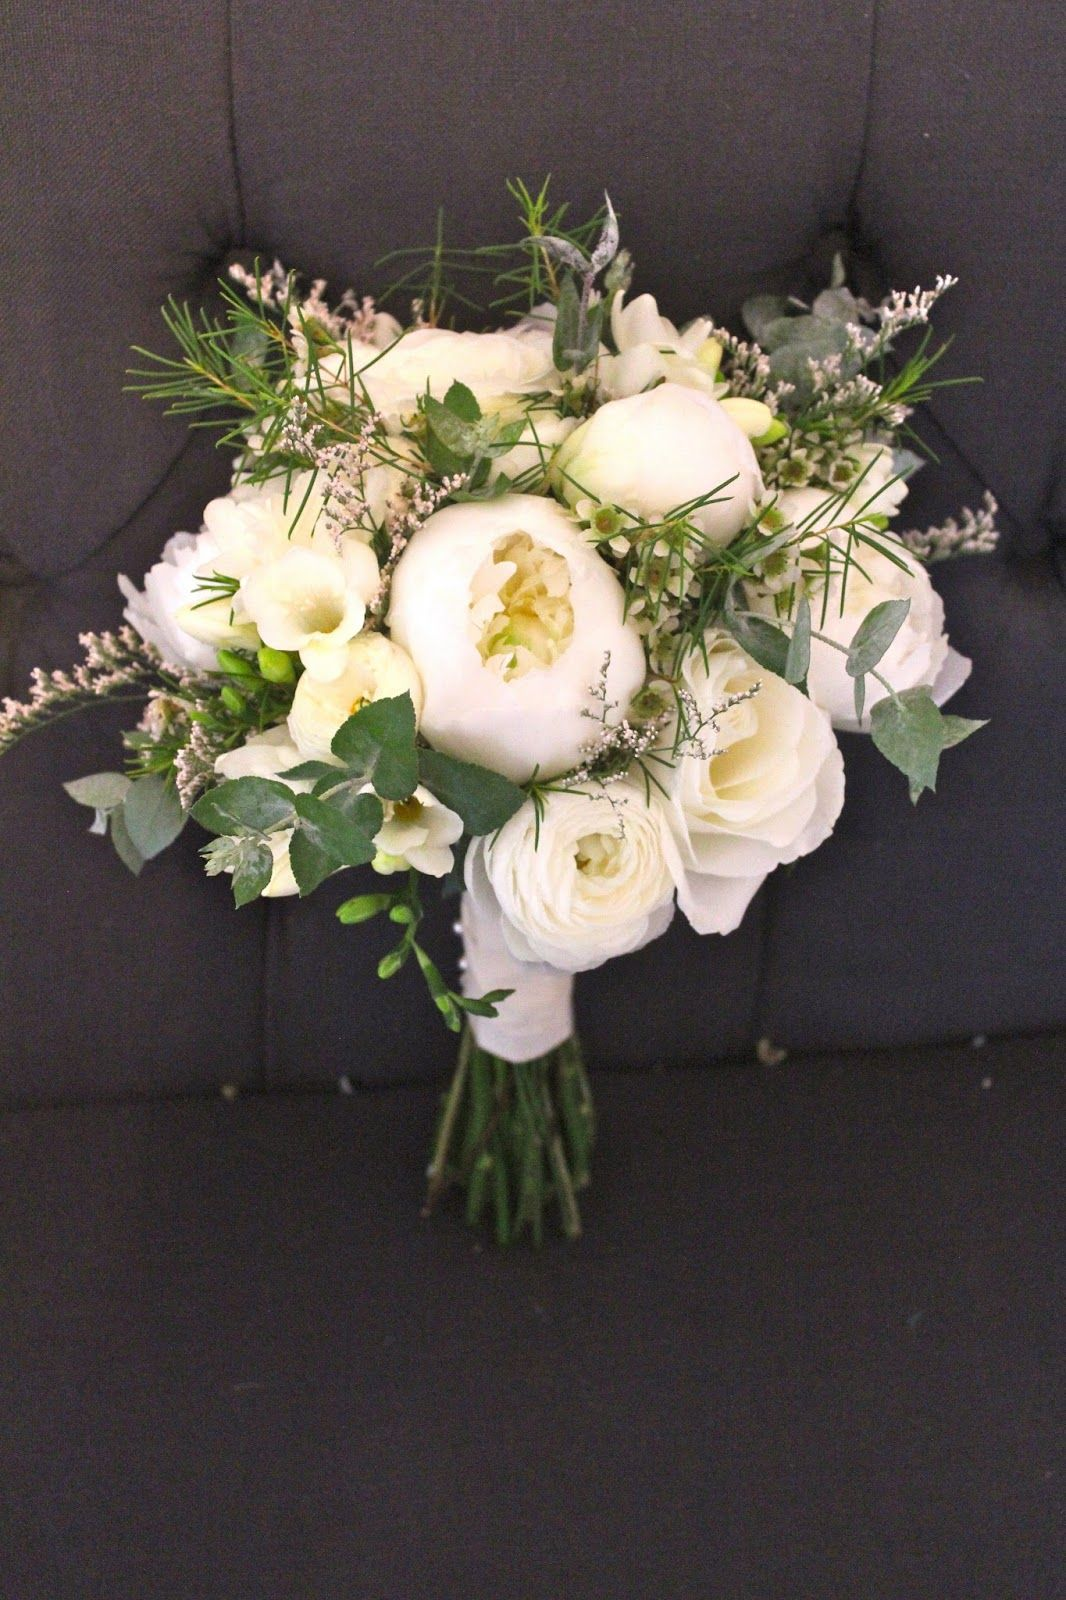 Messy Peonies Ranunculus Roses Wax Flower Freesia Wax Flowers Floral Floral Design